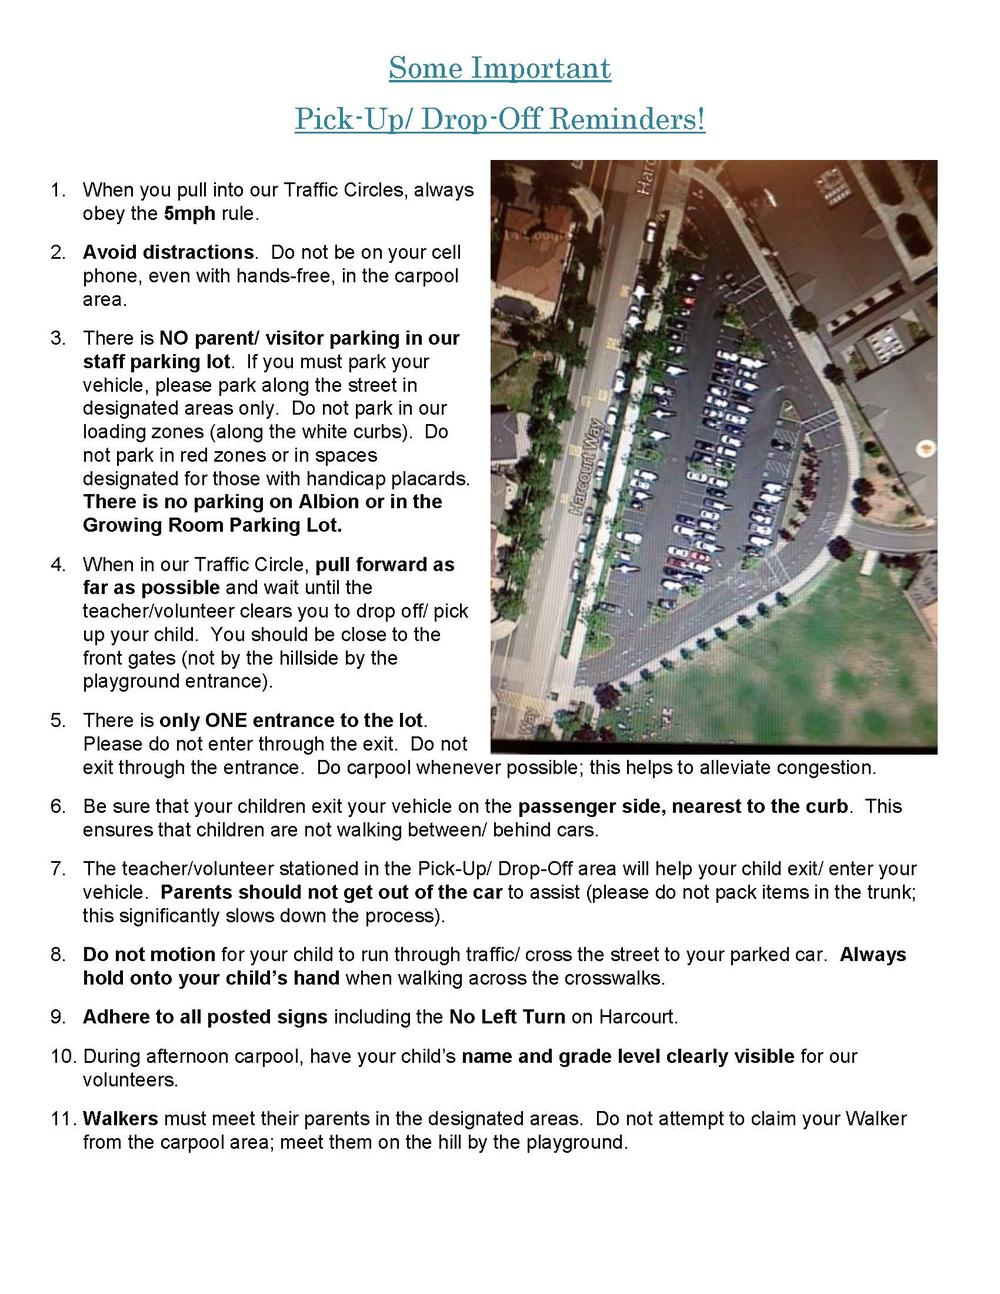 Parking Safety Guidelines w pictures_Page_1.jpg